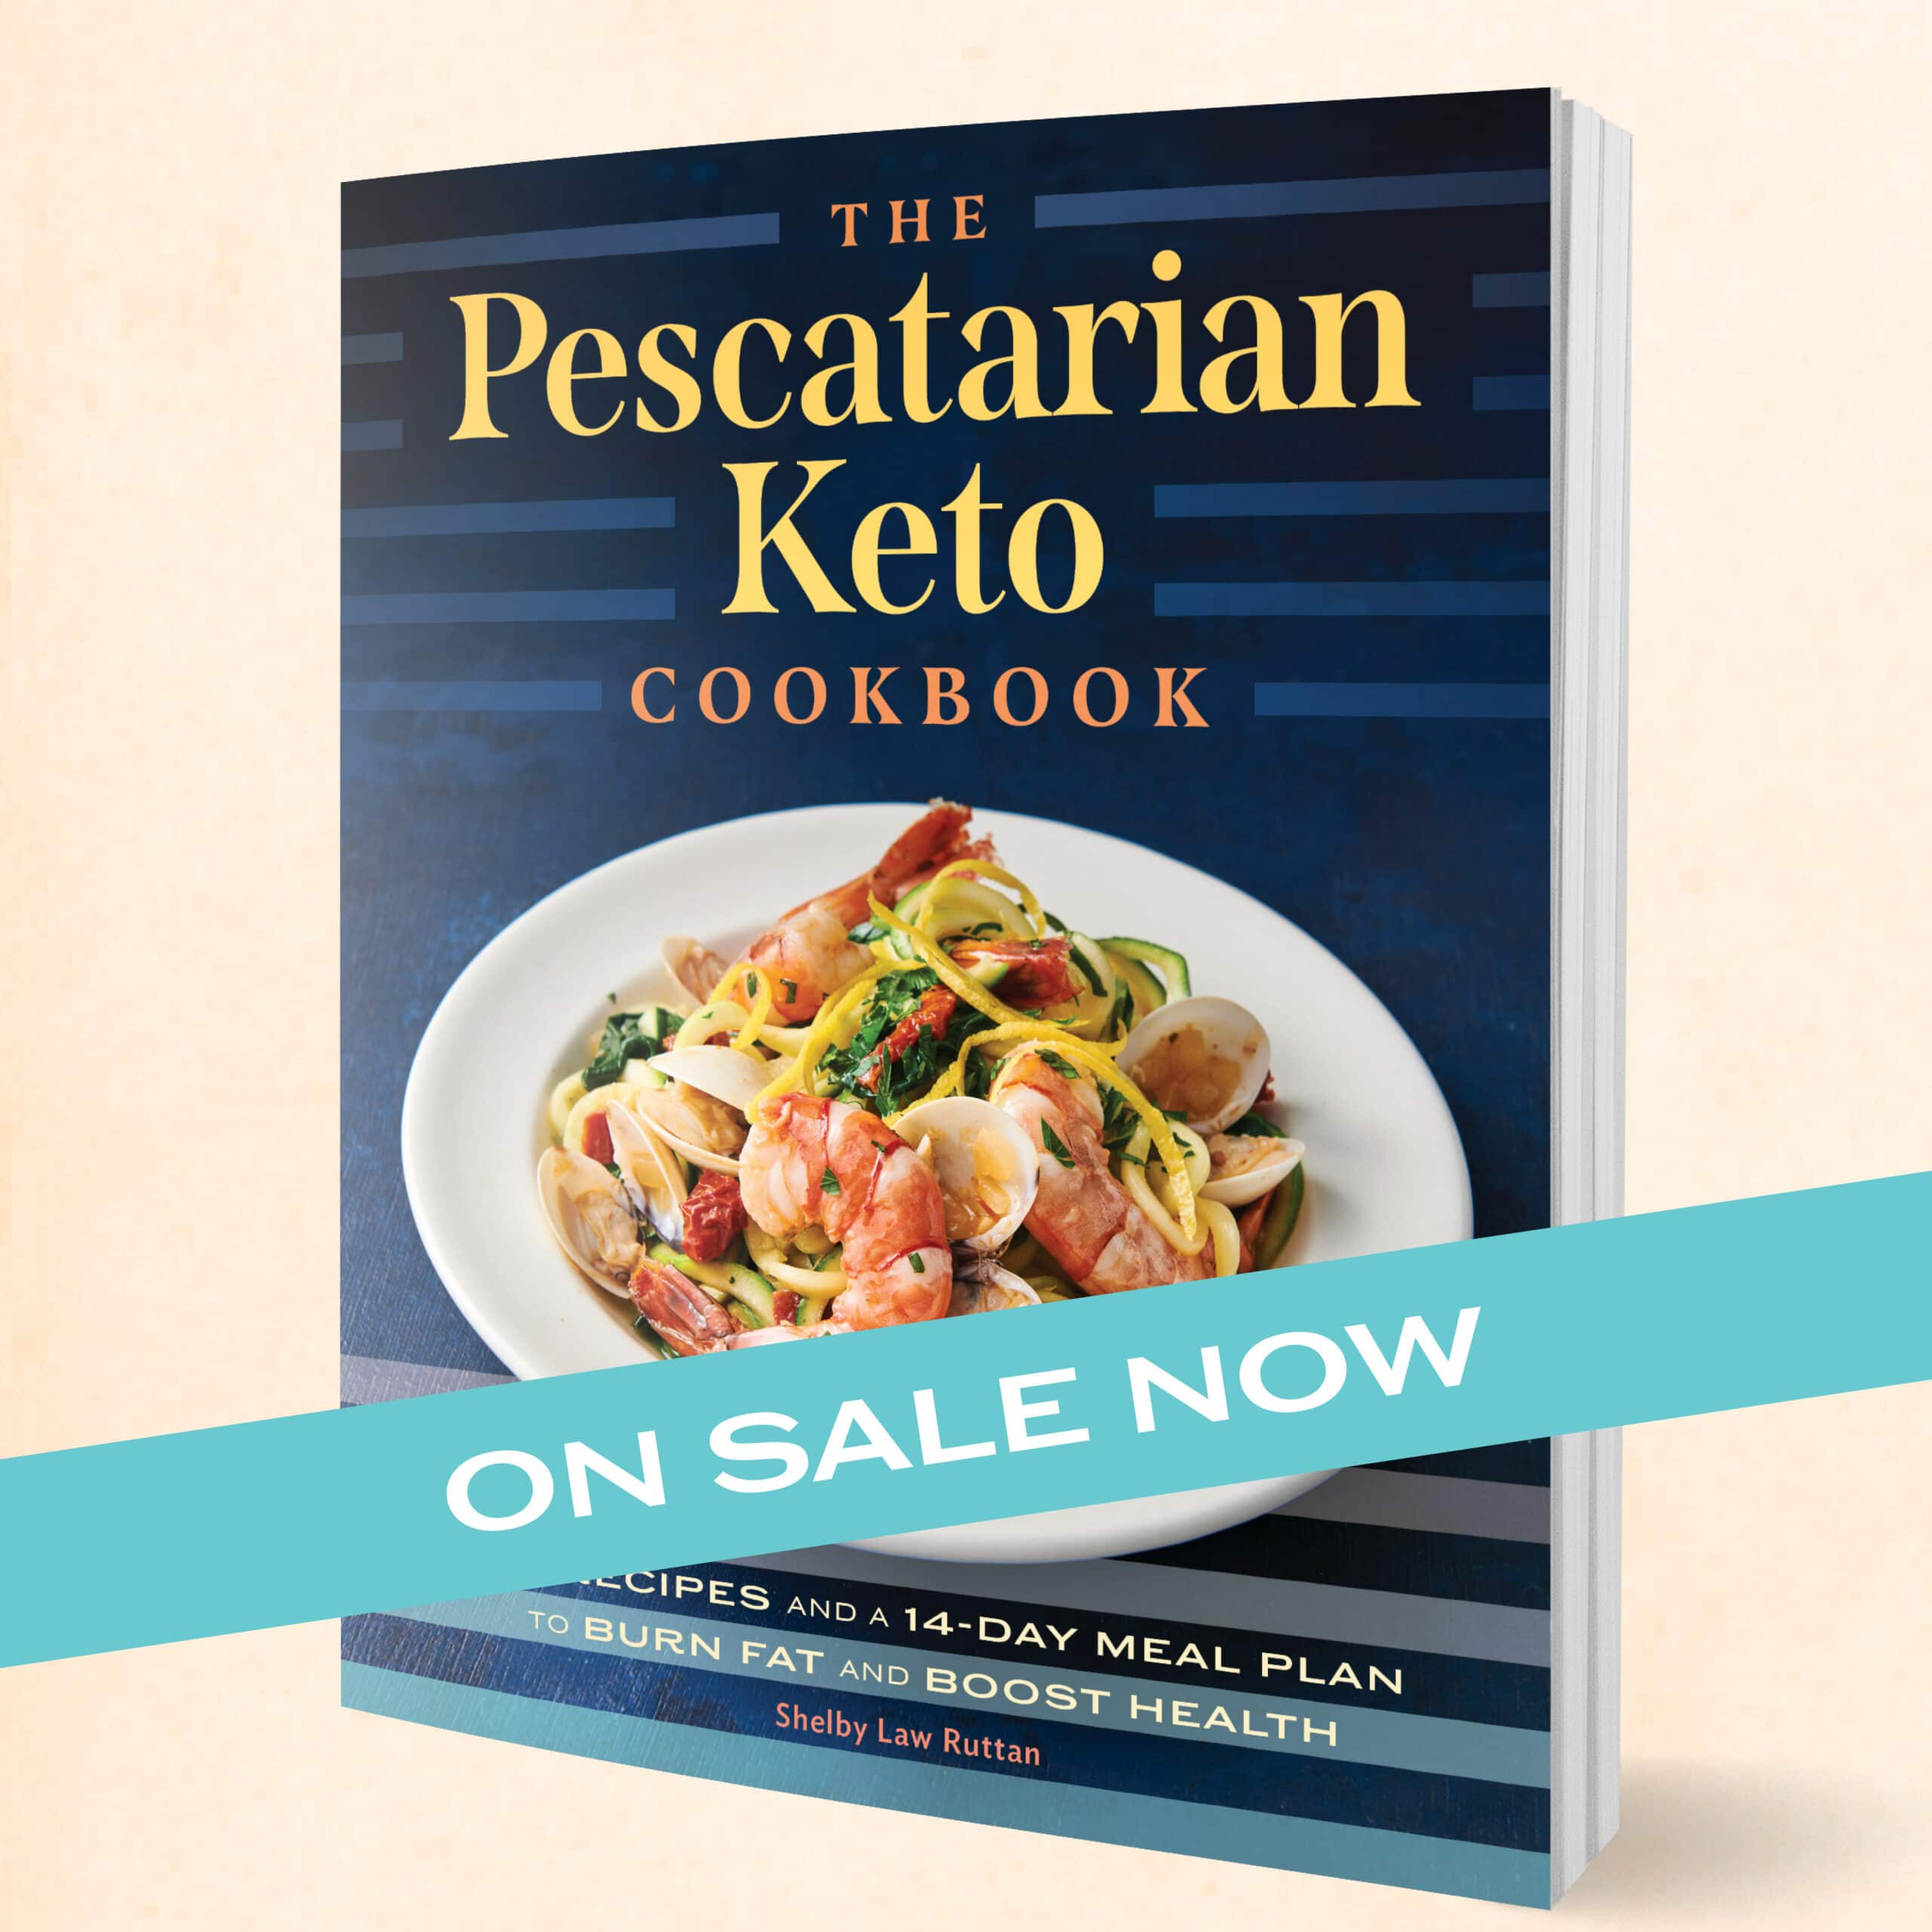 Pescatarian Cookbook Preorder Now Image